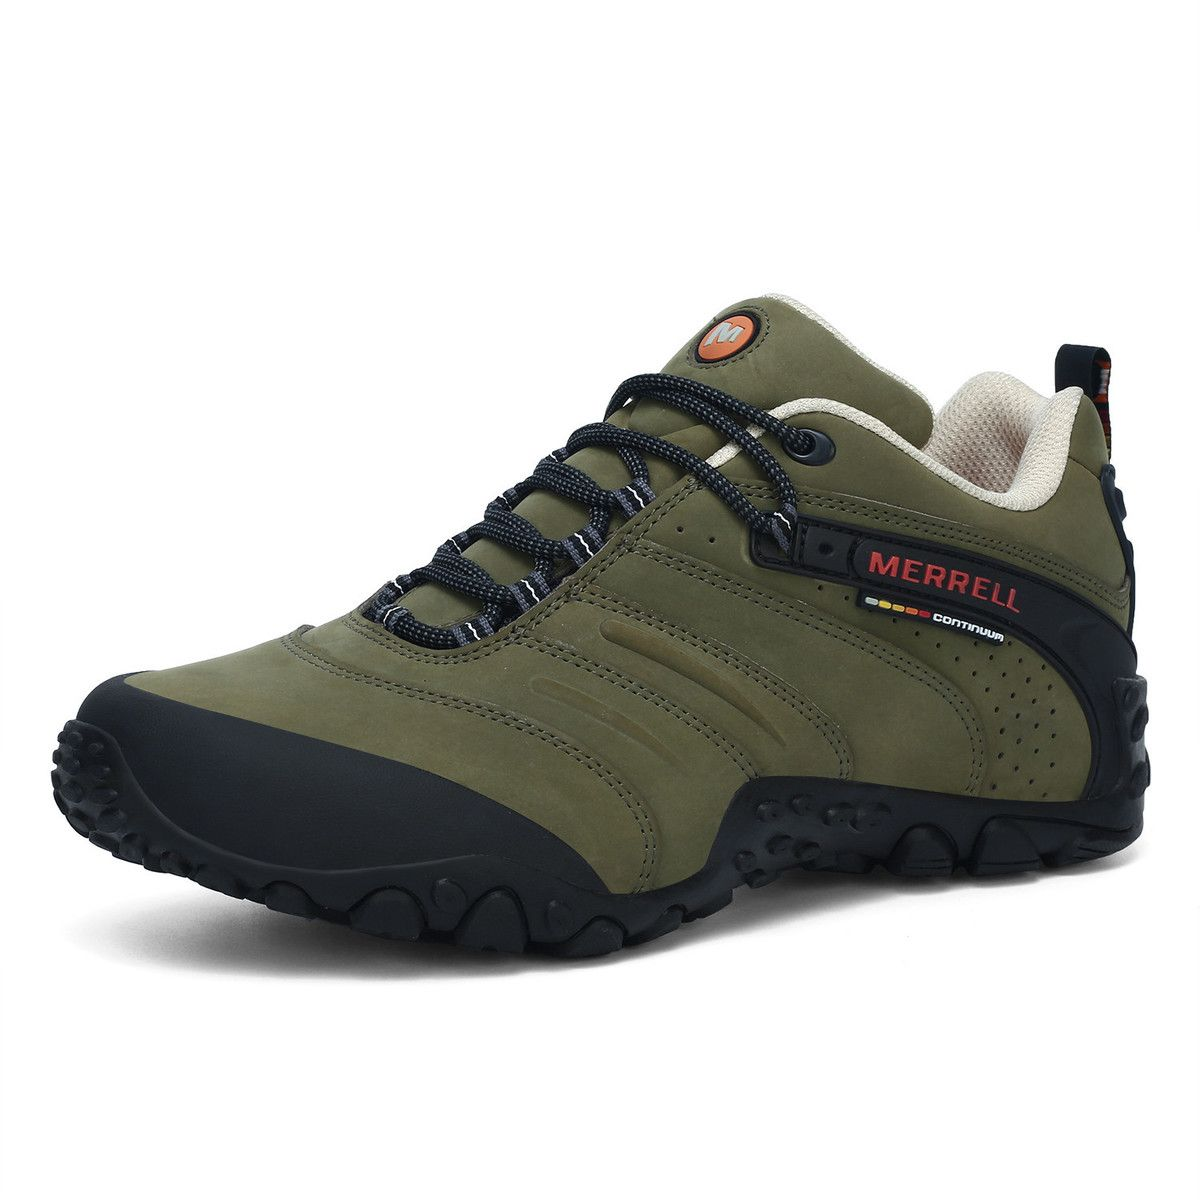 4131451f Merrell Professional Army Green Outdoor Men Sport Leather Hiking ...